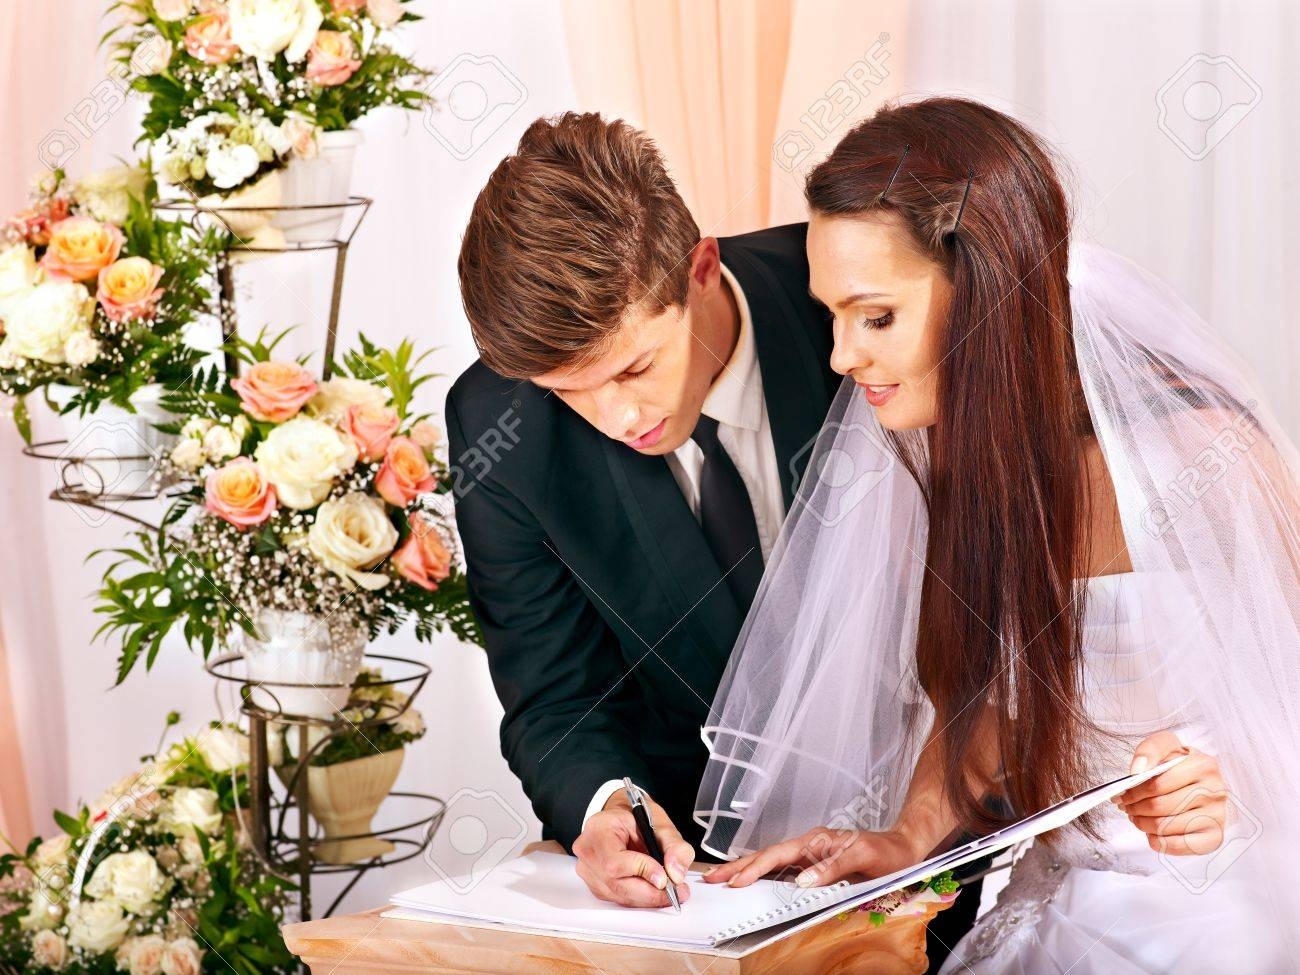 groom and bride register marriage wedding stock photo picture and